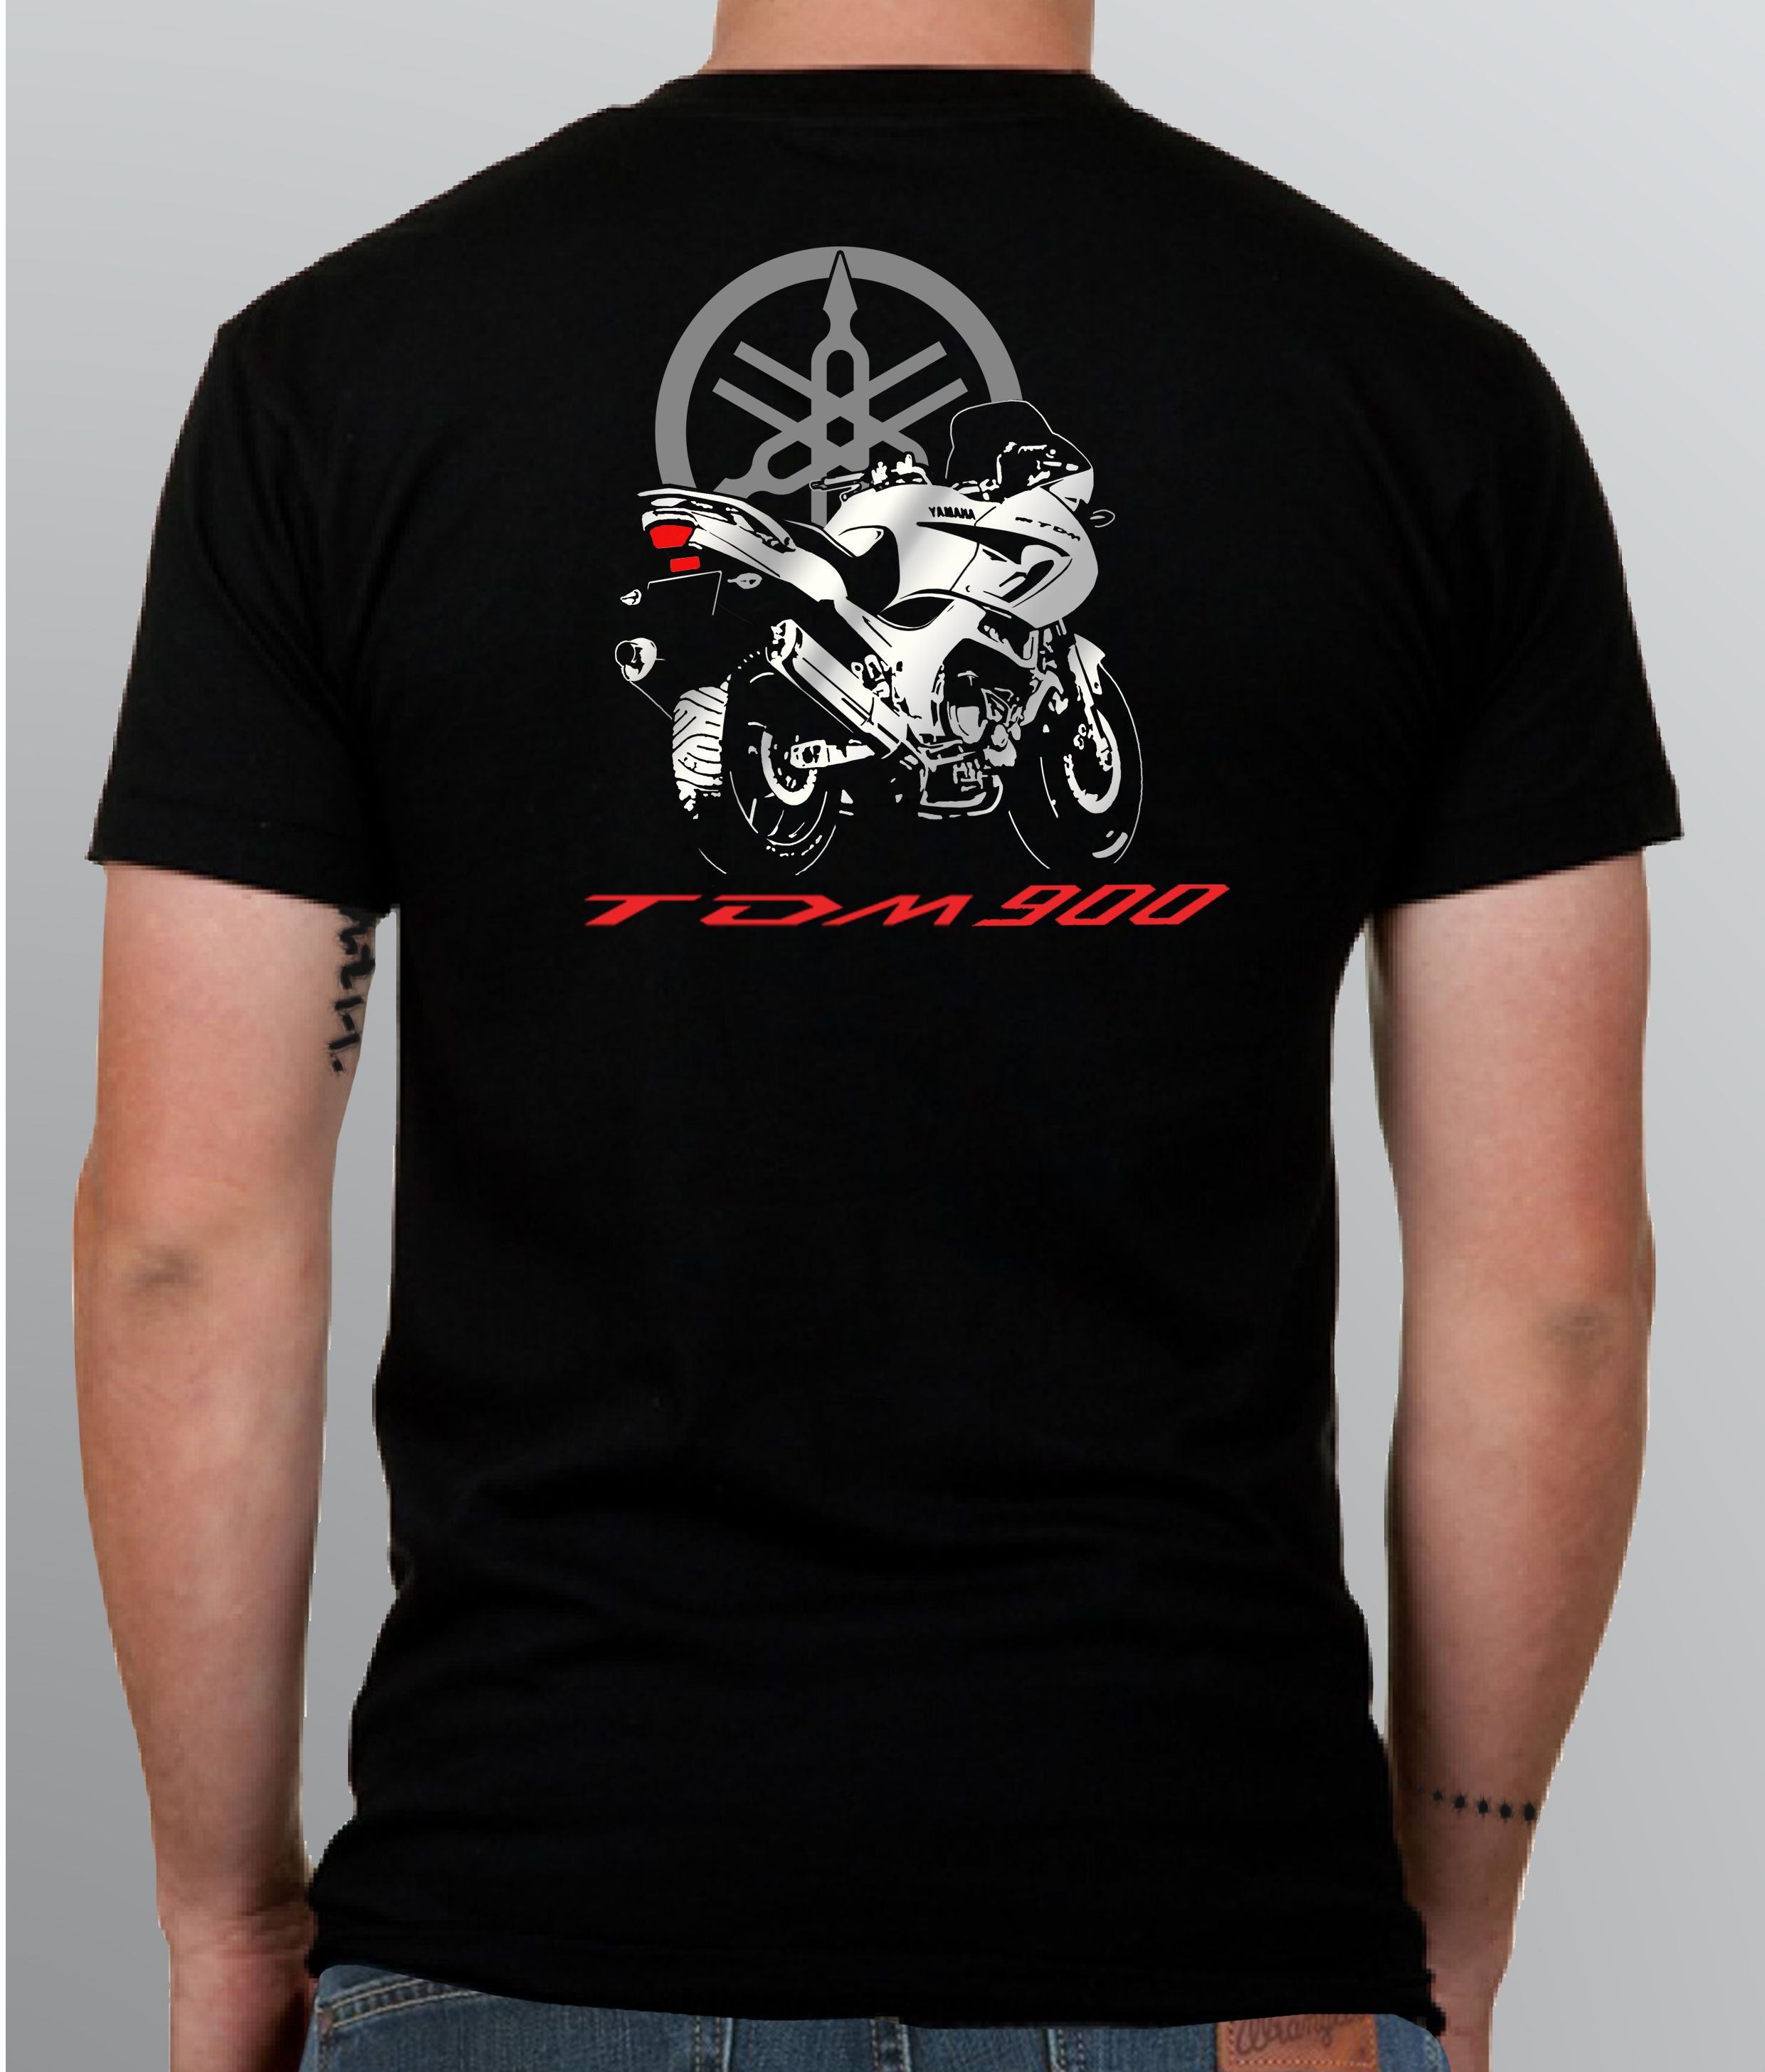 c3443c4c60c0 Yamaha TDM 900 t-shirt CUSTOM ORDER by BURNtheBEANS Contact us for details